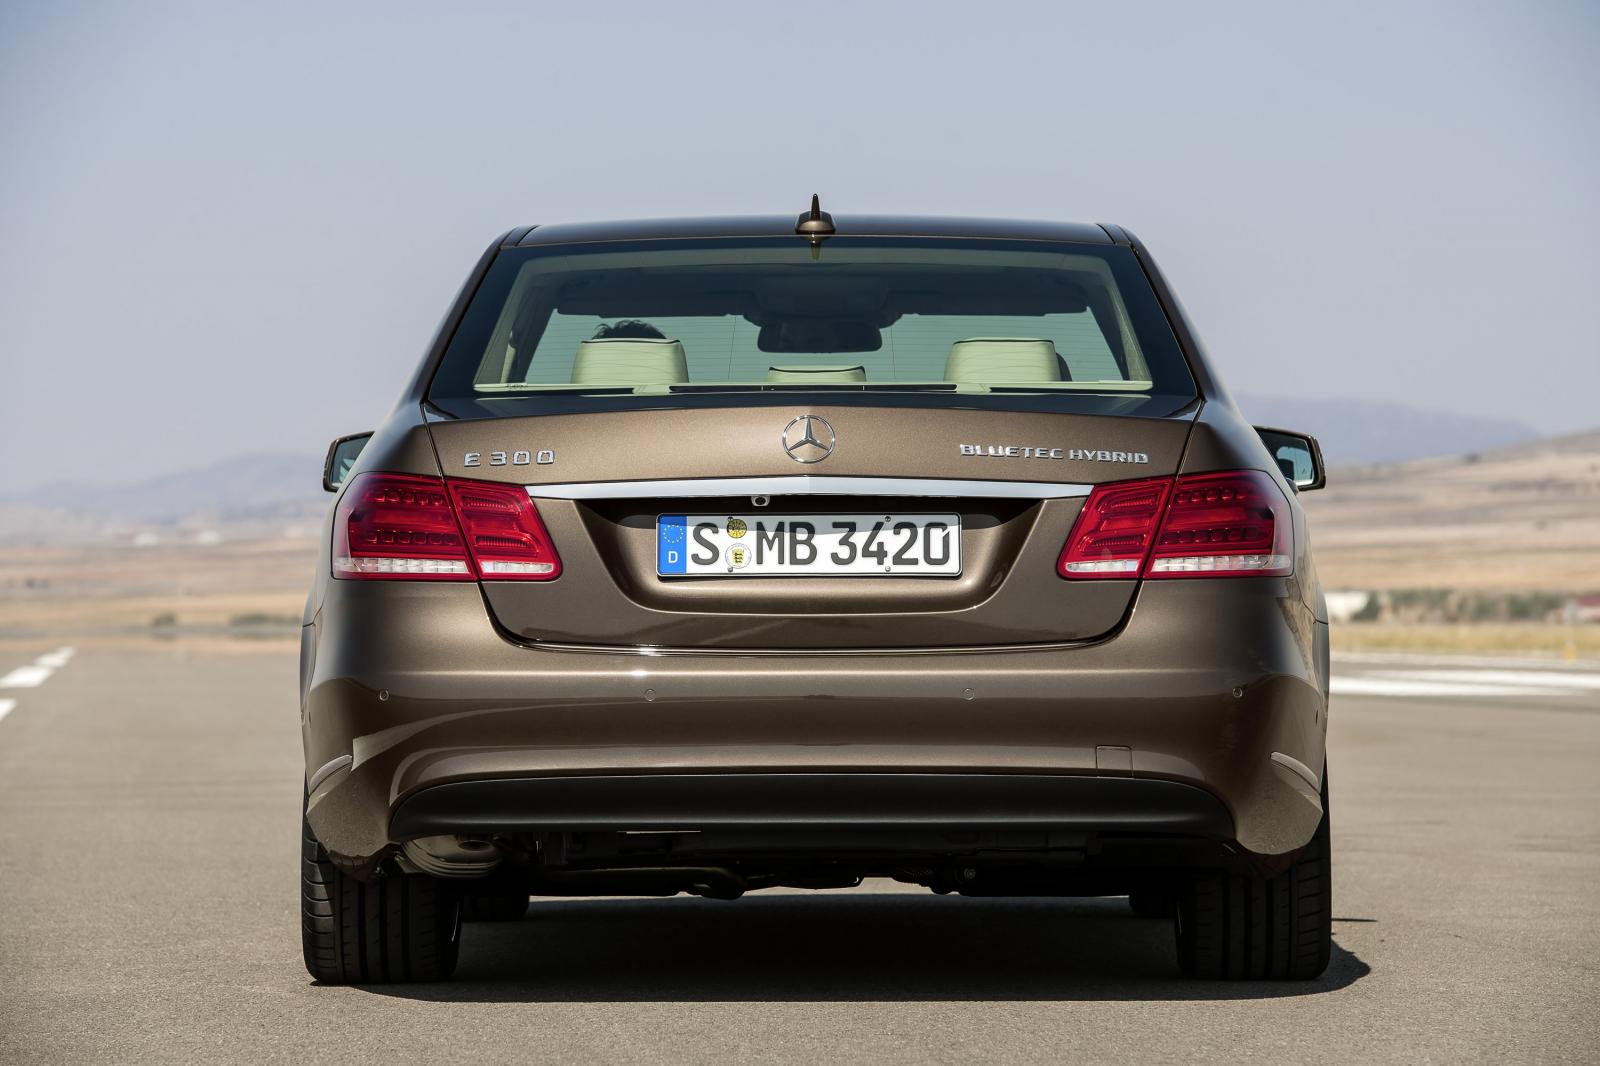 2014 mercedes benz e class facelift revealed autoevolution for Mercedes benz 2014